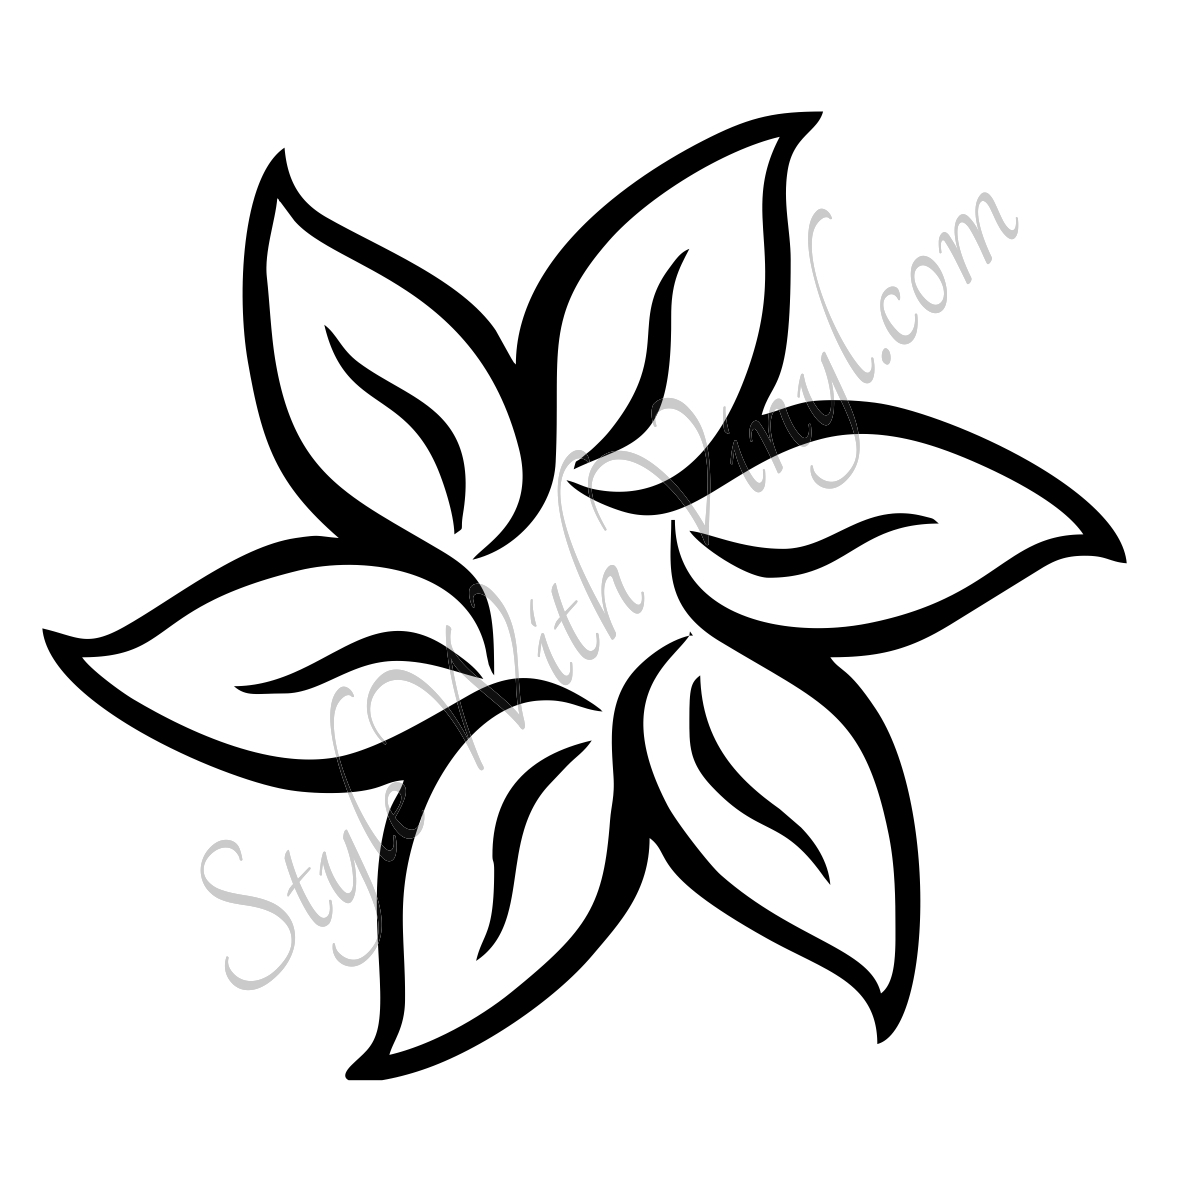 Lotus Flower Drawing Simple At Getdrawings Free For Personal